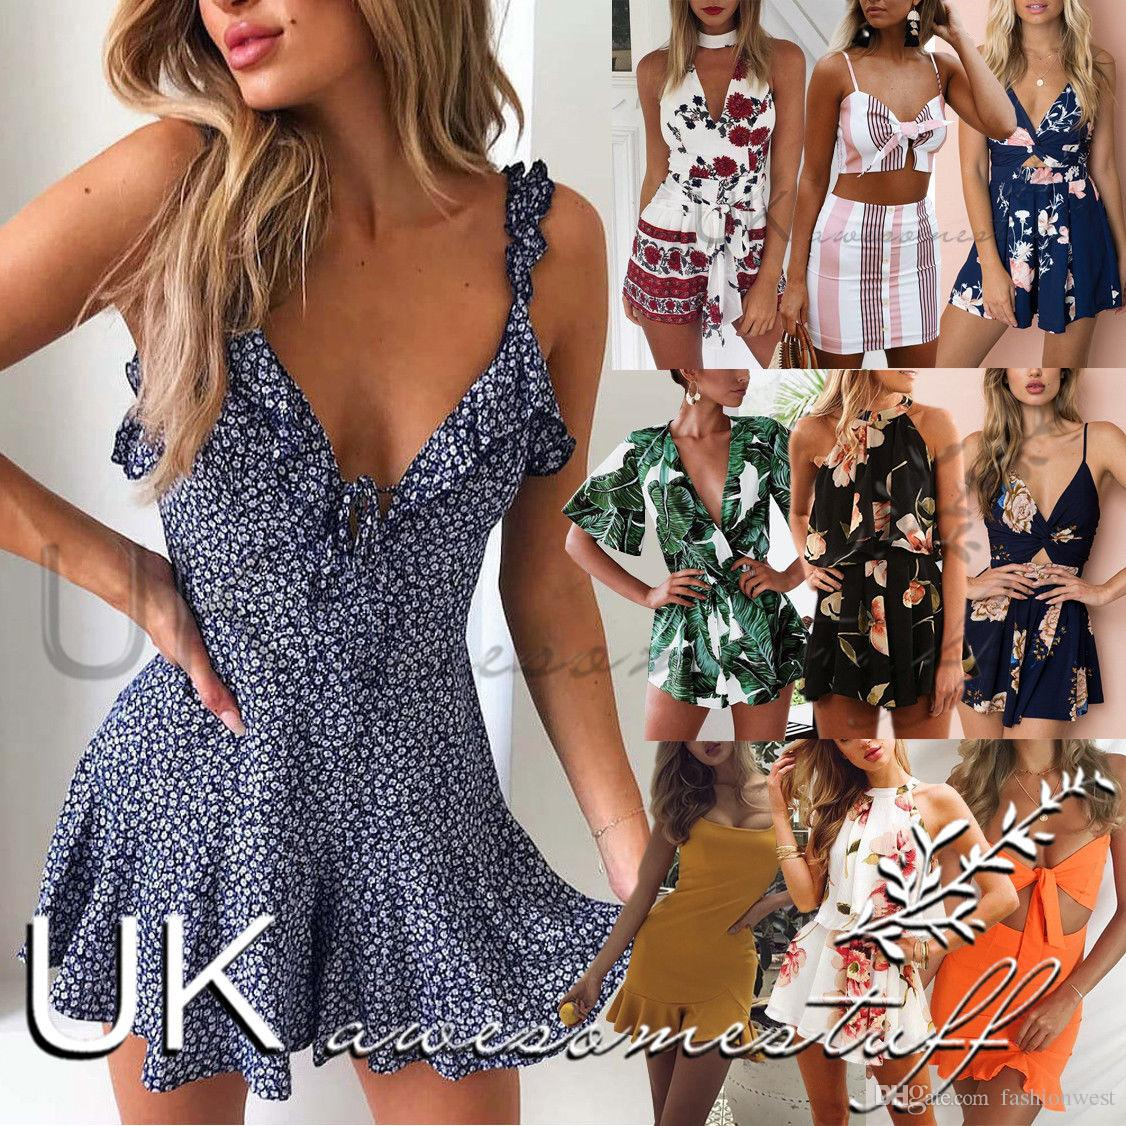 Reino Unido Womens Holiday Playsuit Romper Ladies Jumpsuit Summer Beach Dress Talla 6 - 14